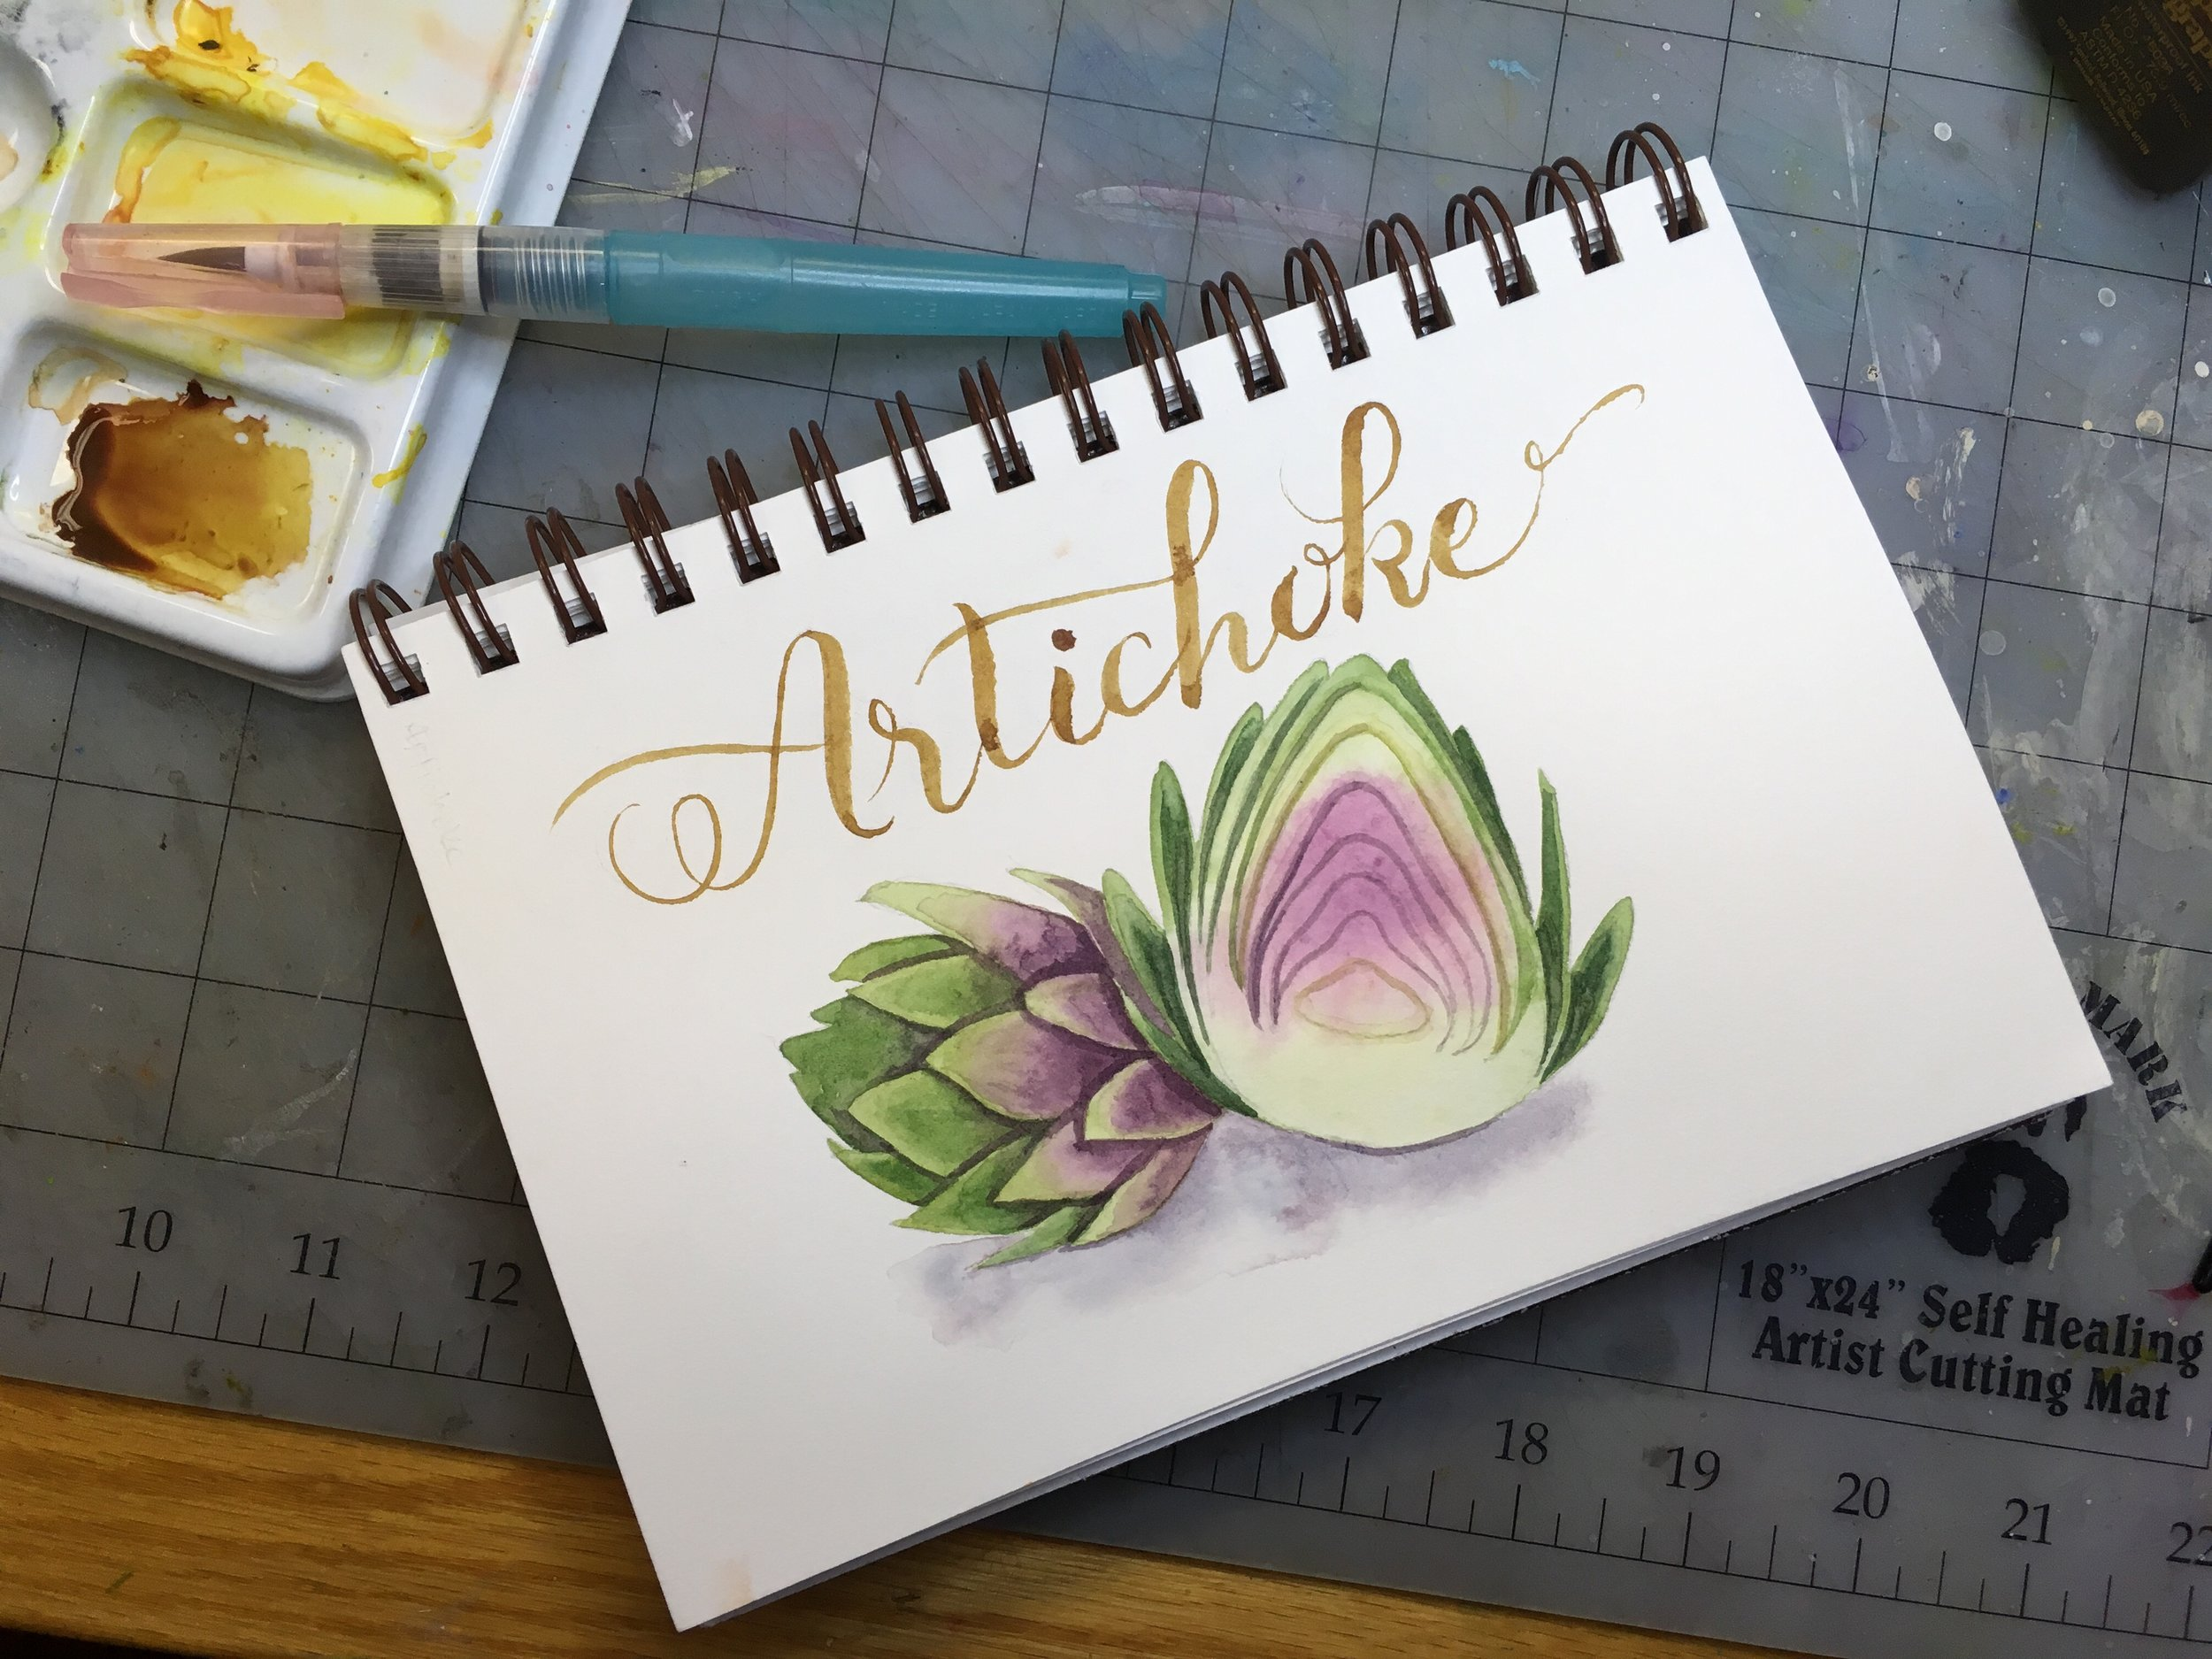 Artichoke, watercolor © Denise Ortakales